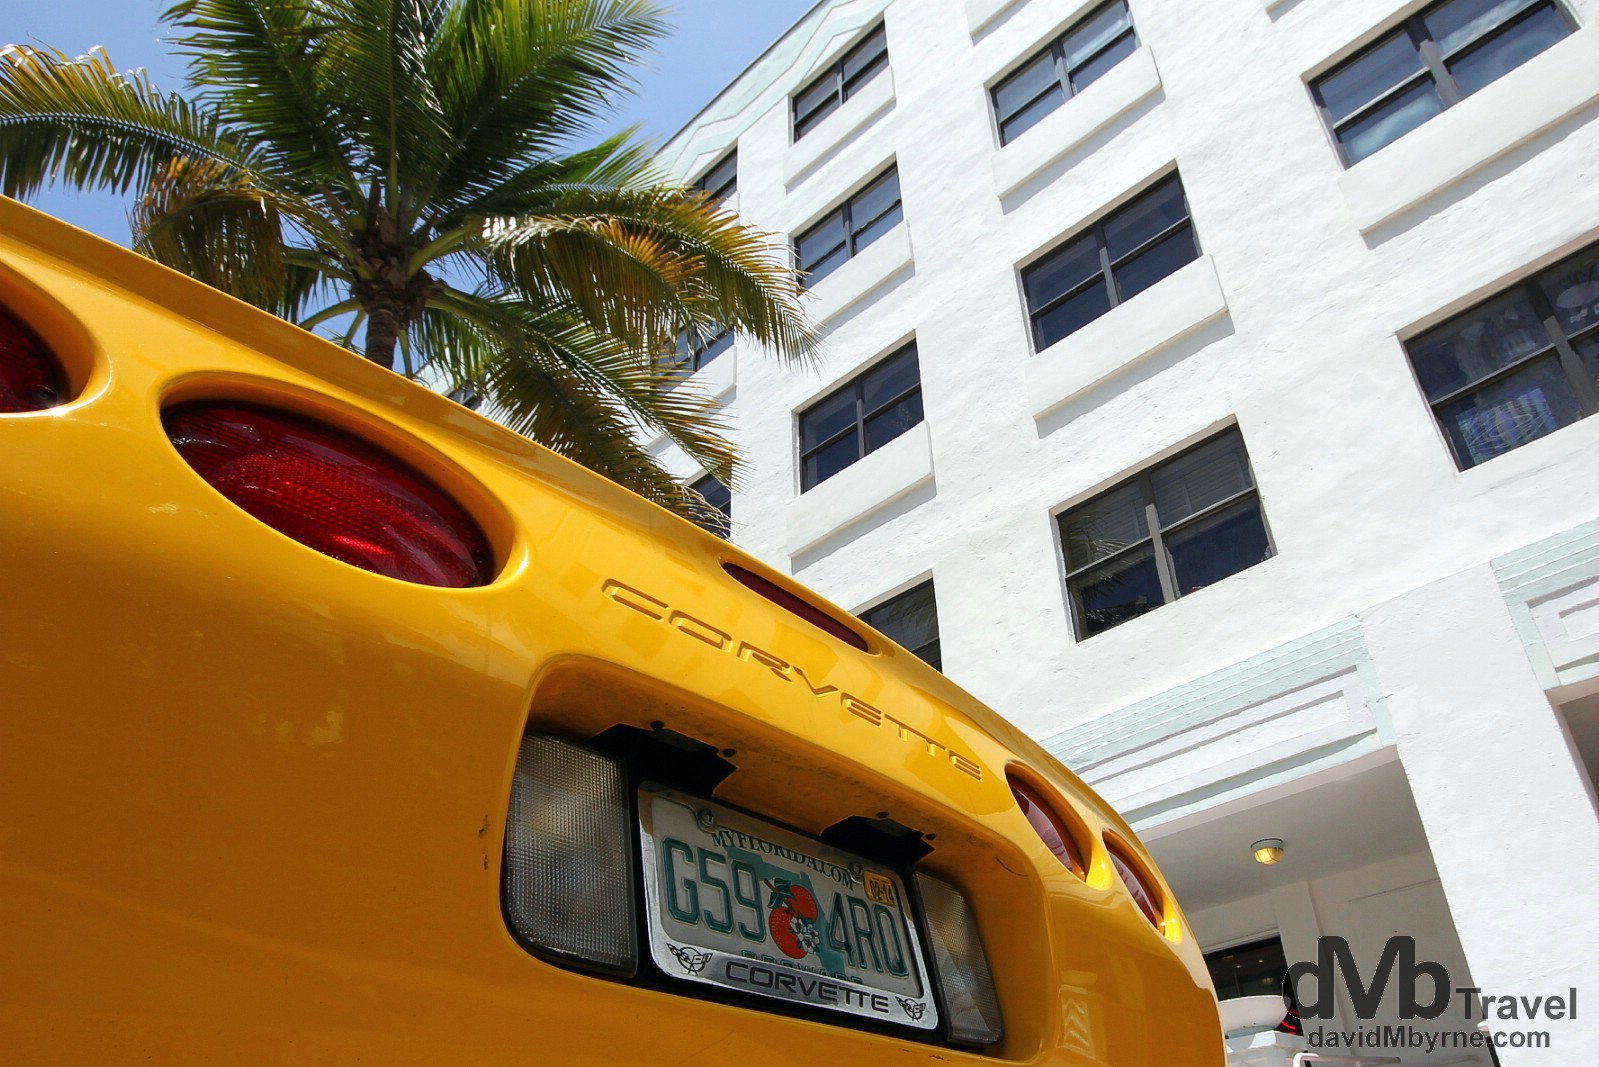 A corvette parked outside the Van Ness Hotel on Ocean Drive, South Beach, Miami, Florida, USA. July 8th 2013.